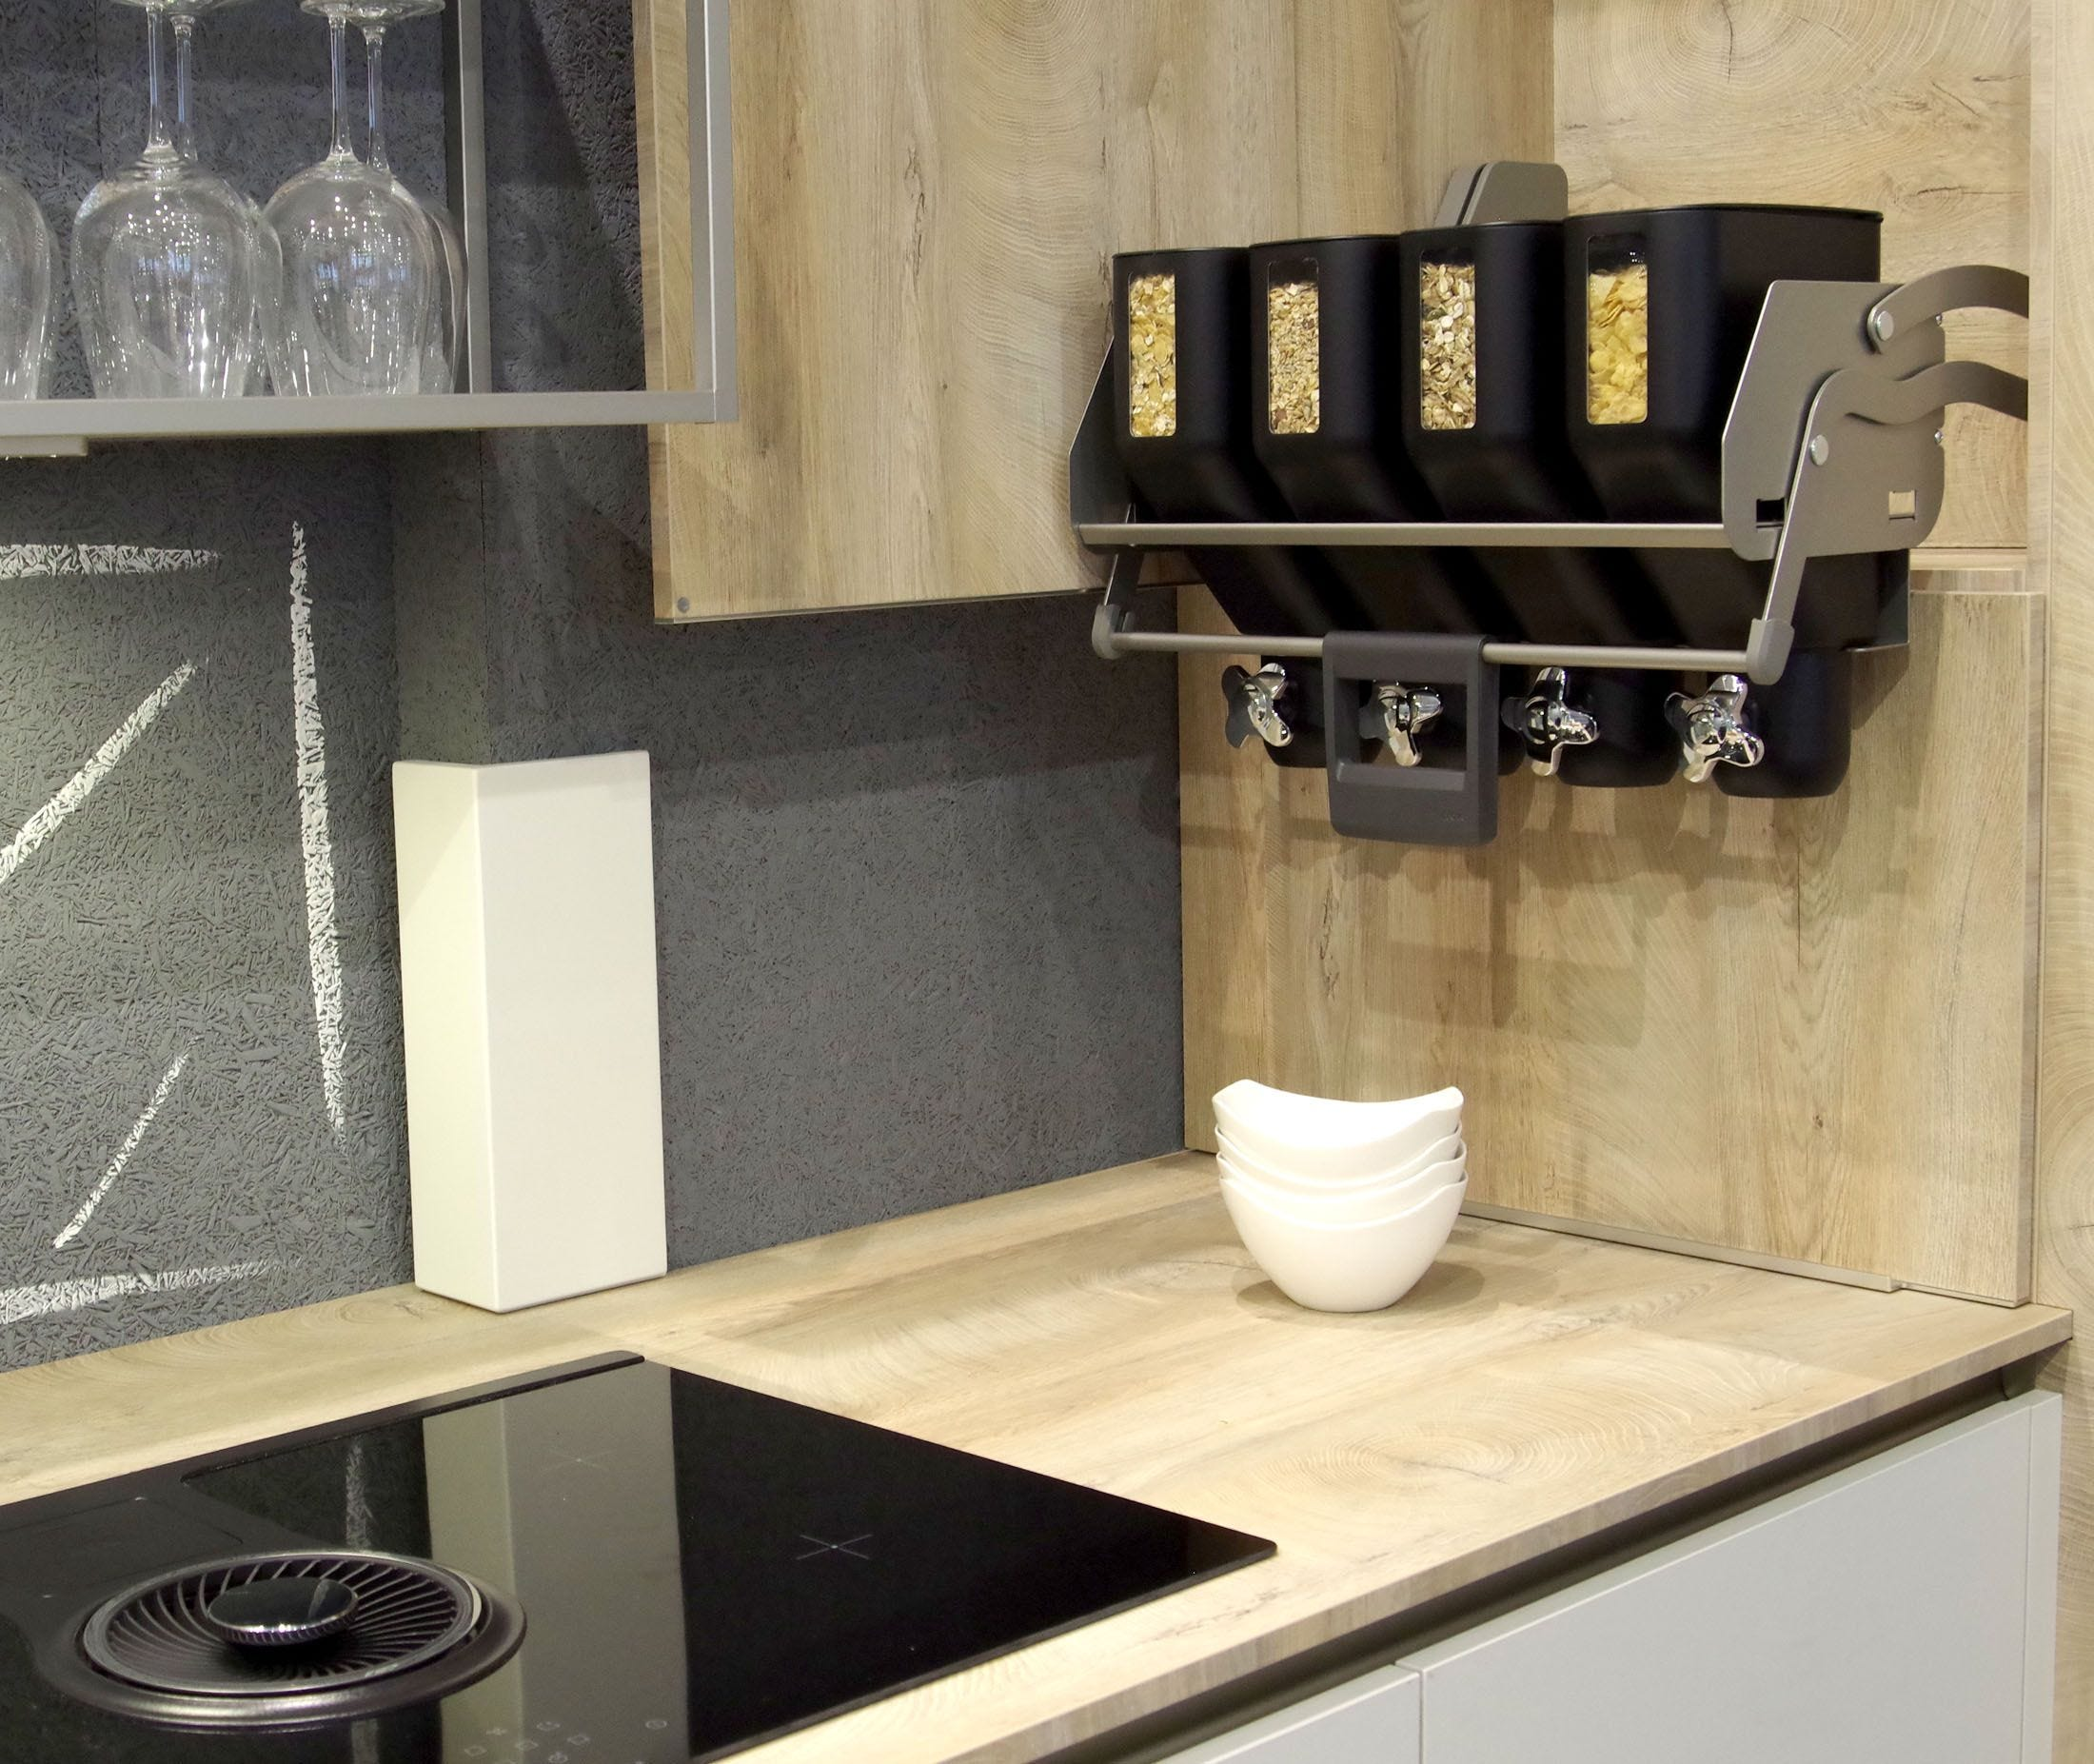 This millennial kitchen has beer robots and lots of cereal